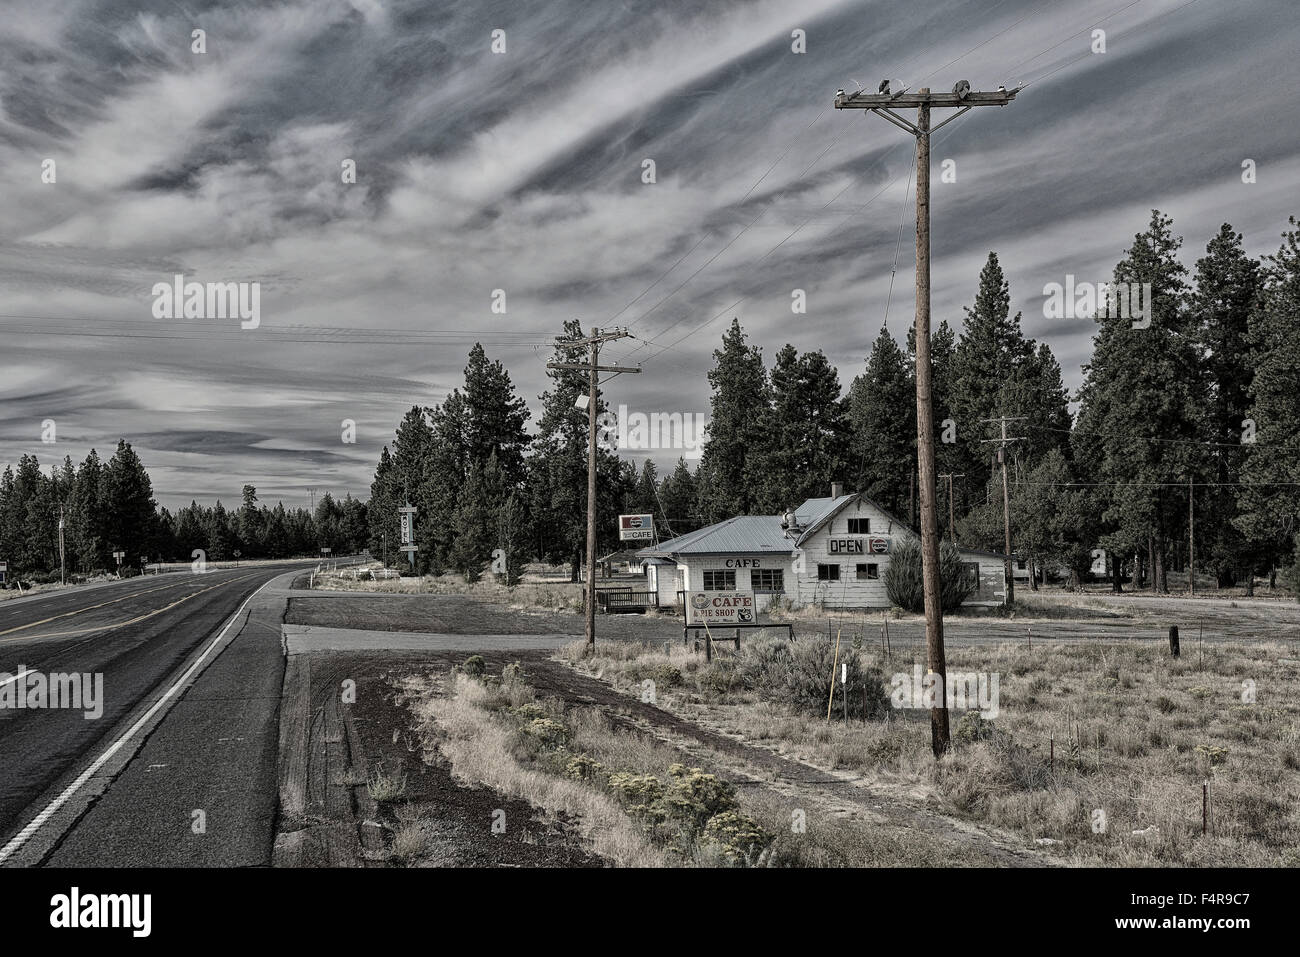 USA, United States, America, Rivers Bend Cafe, Chiloquin, Oregon, highway, roadside, Americana, cafe, on the road, - Stock Image